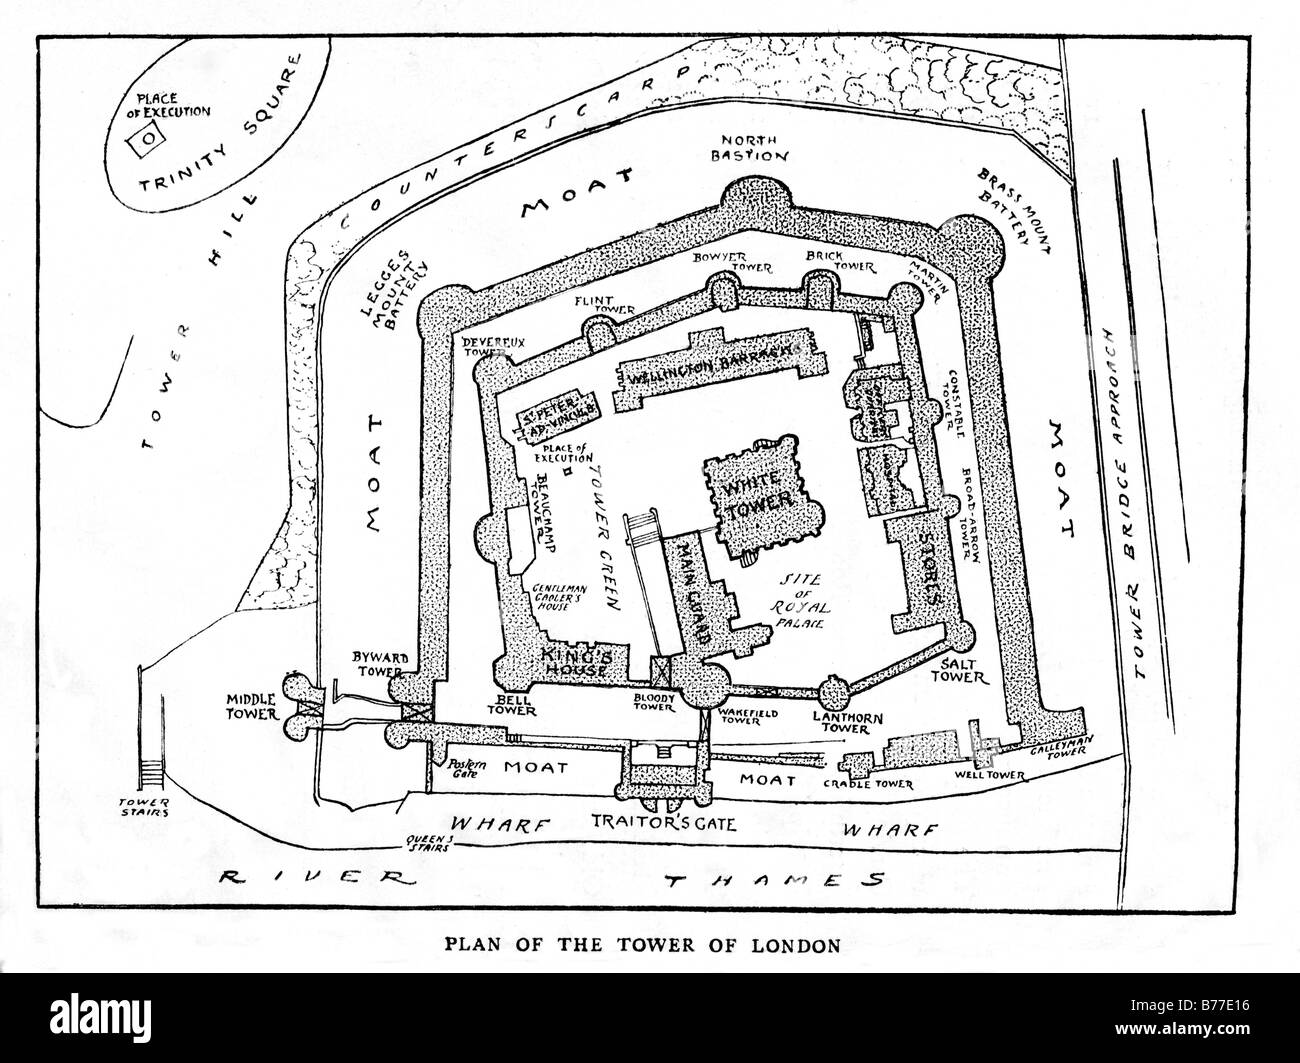 Tower of London 1885 plan of the layout of the London landmark as it was in Victorian times - Stock Image